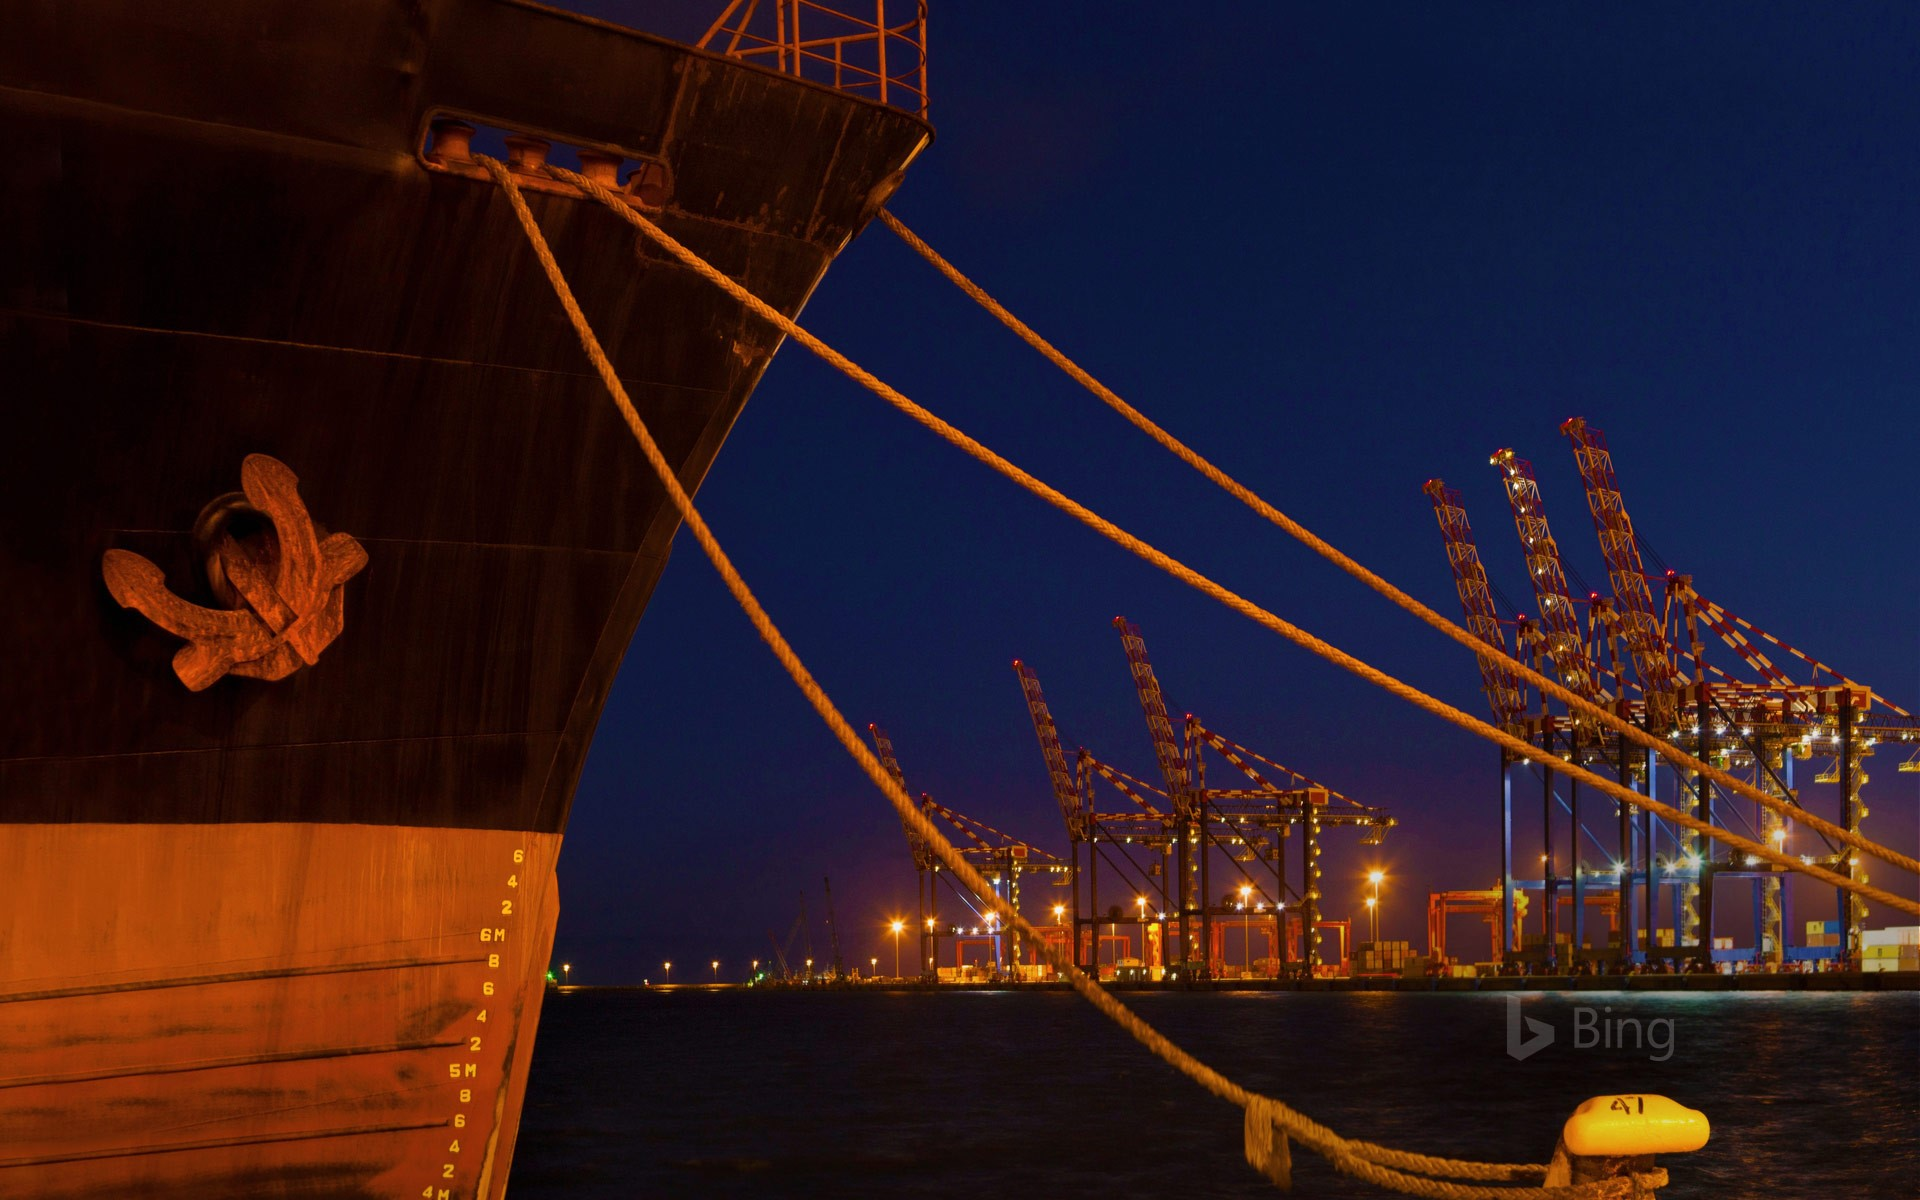 A ship docked at night in the Port of Cape Town, South Africa